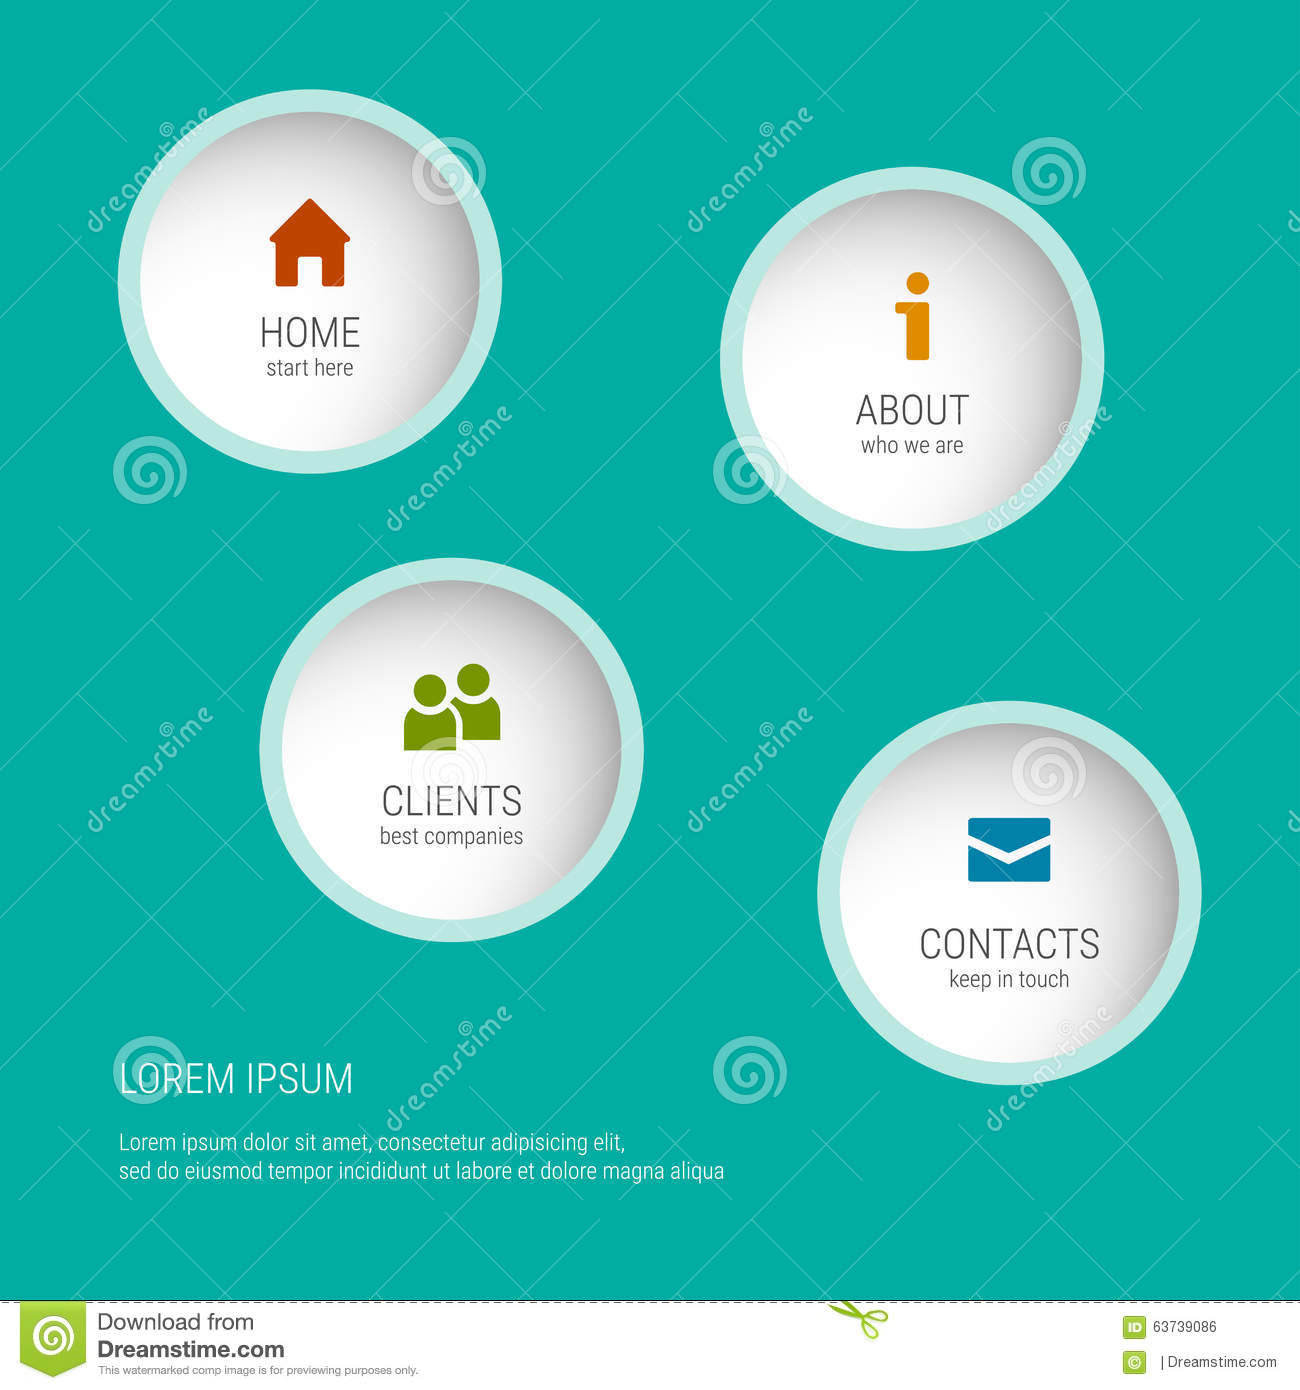 Website soft colors - The Modern Soft Color Design Template Graphic Or Website Layout Vector Sample Icons